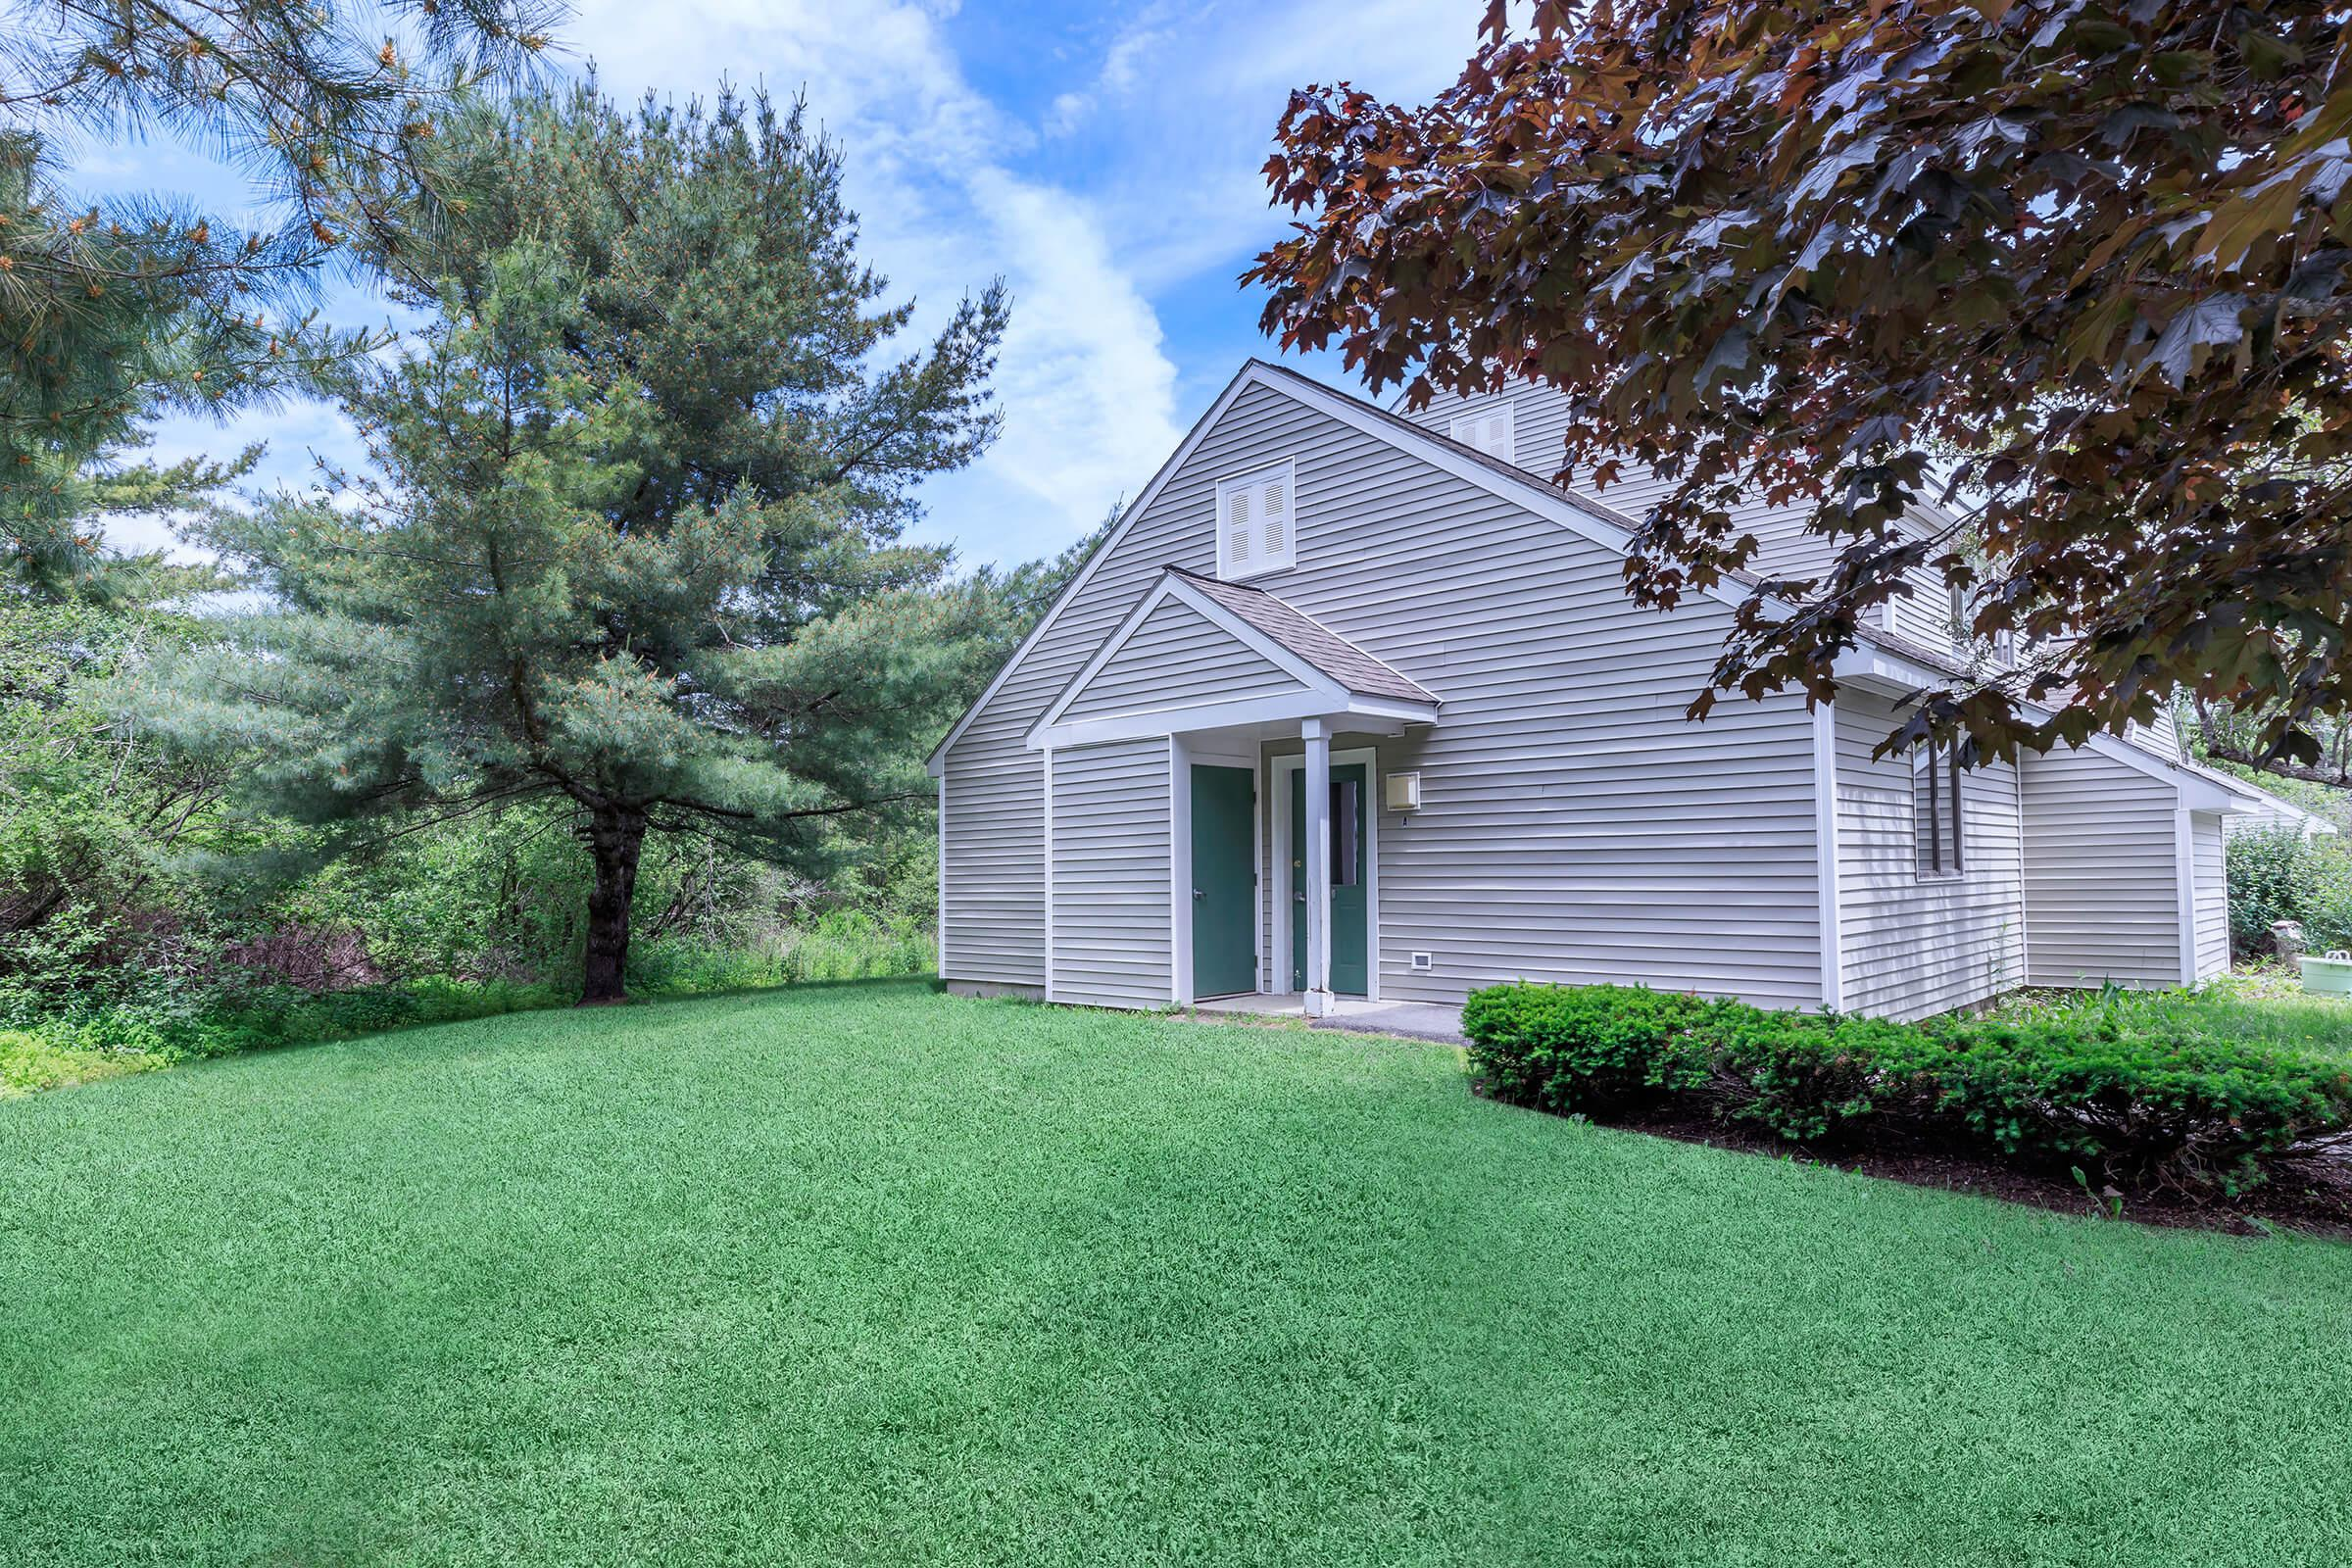 a green lawn in front of a house